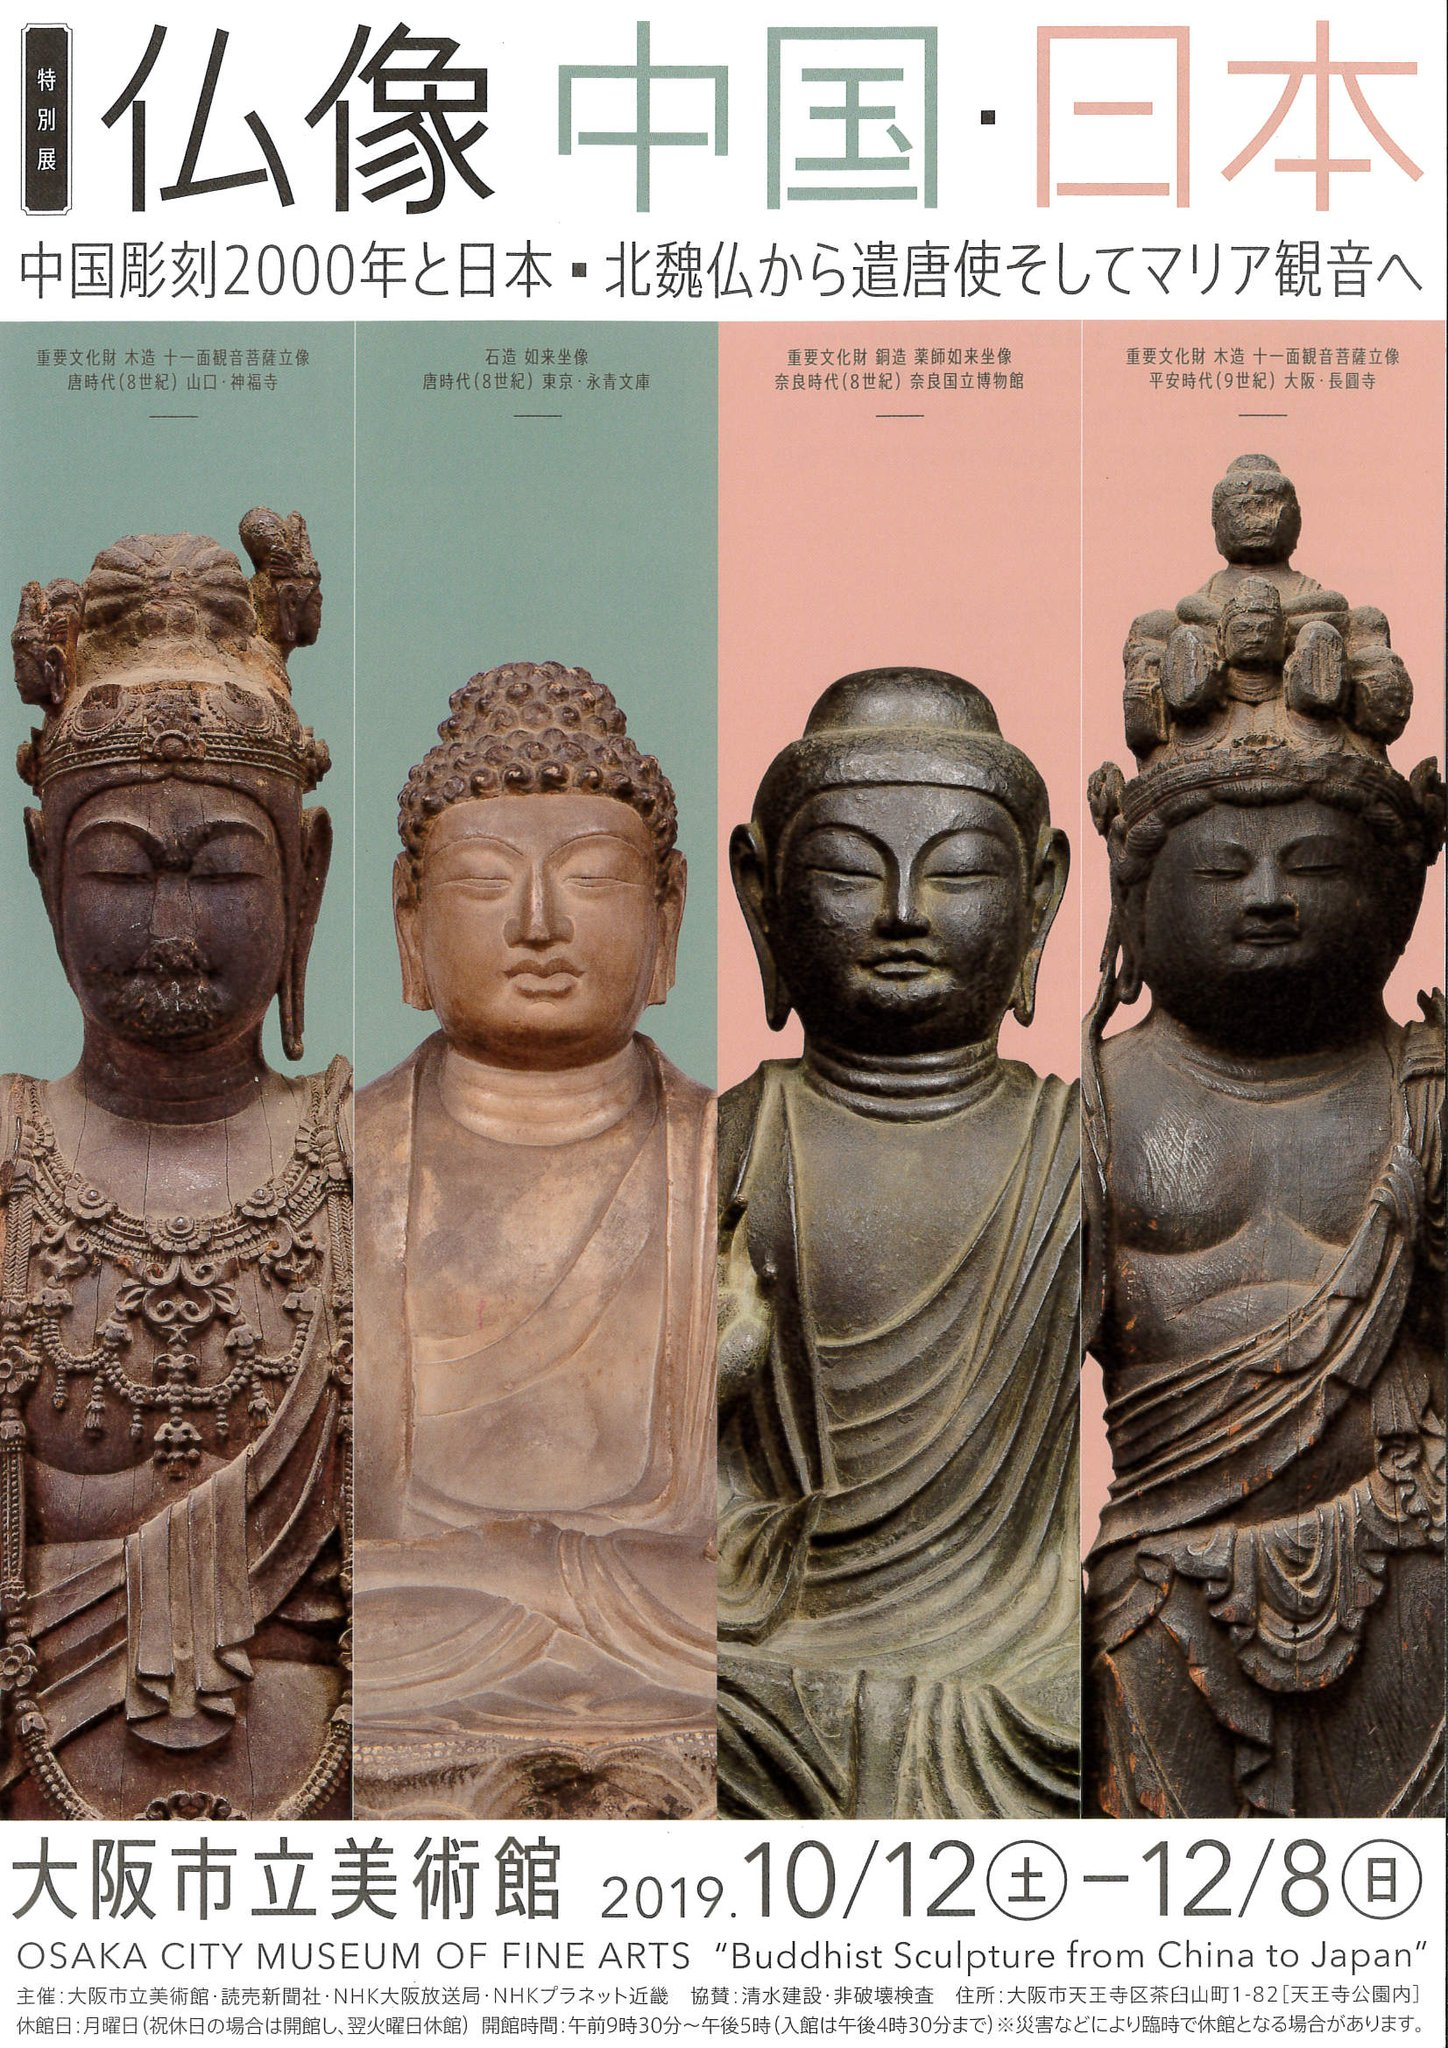 Buddhist Sculpture from China to Japan